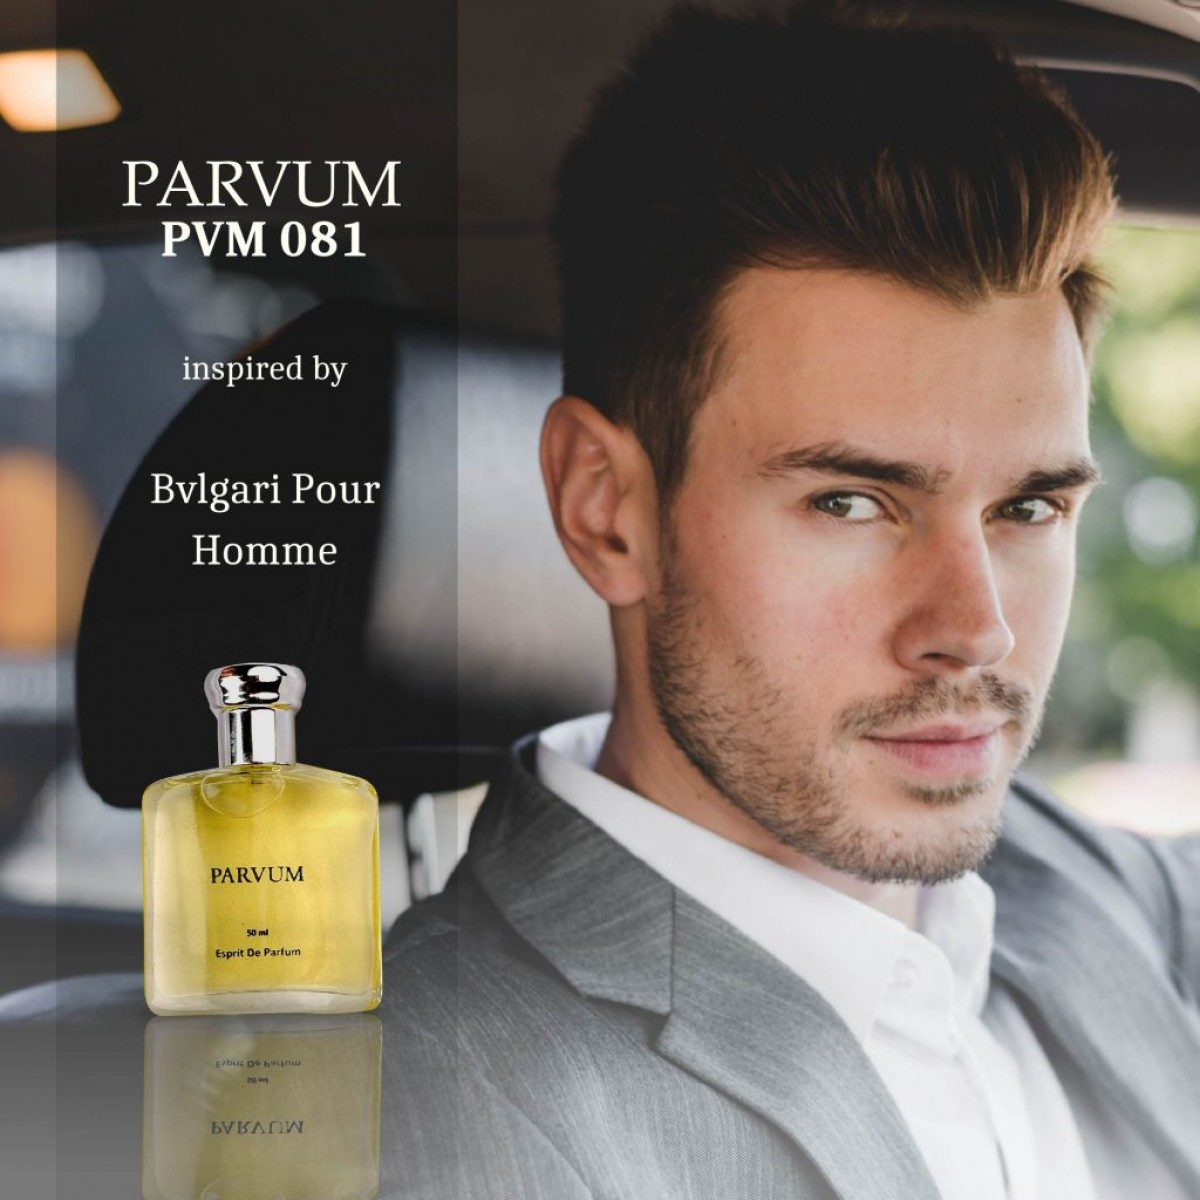 PARVUM Inspired By Bvlgari Pour Homme - Hara & Co